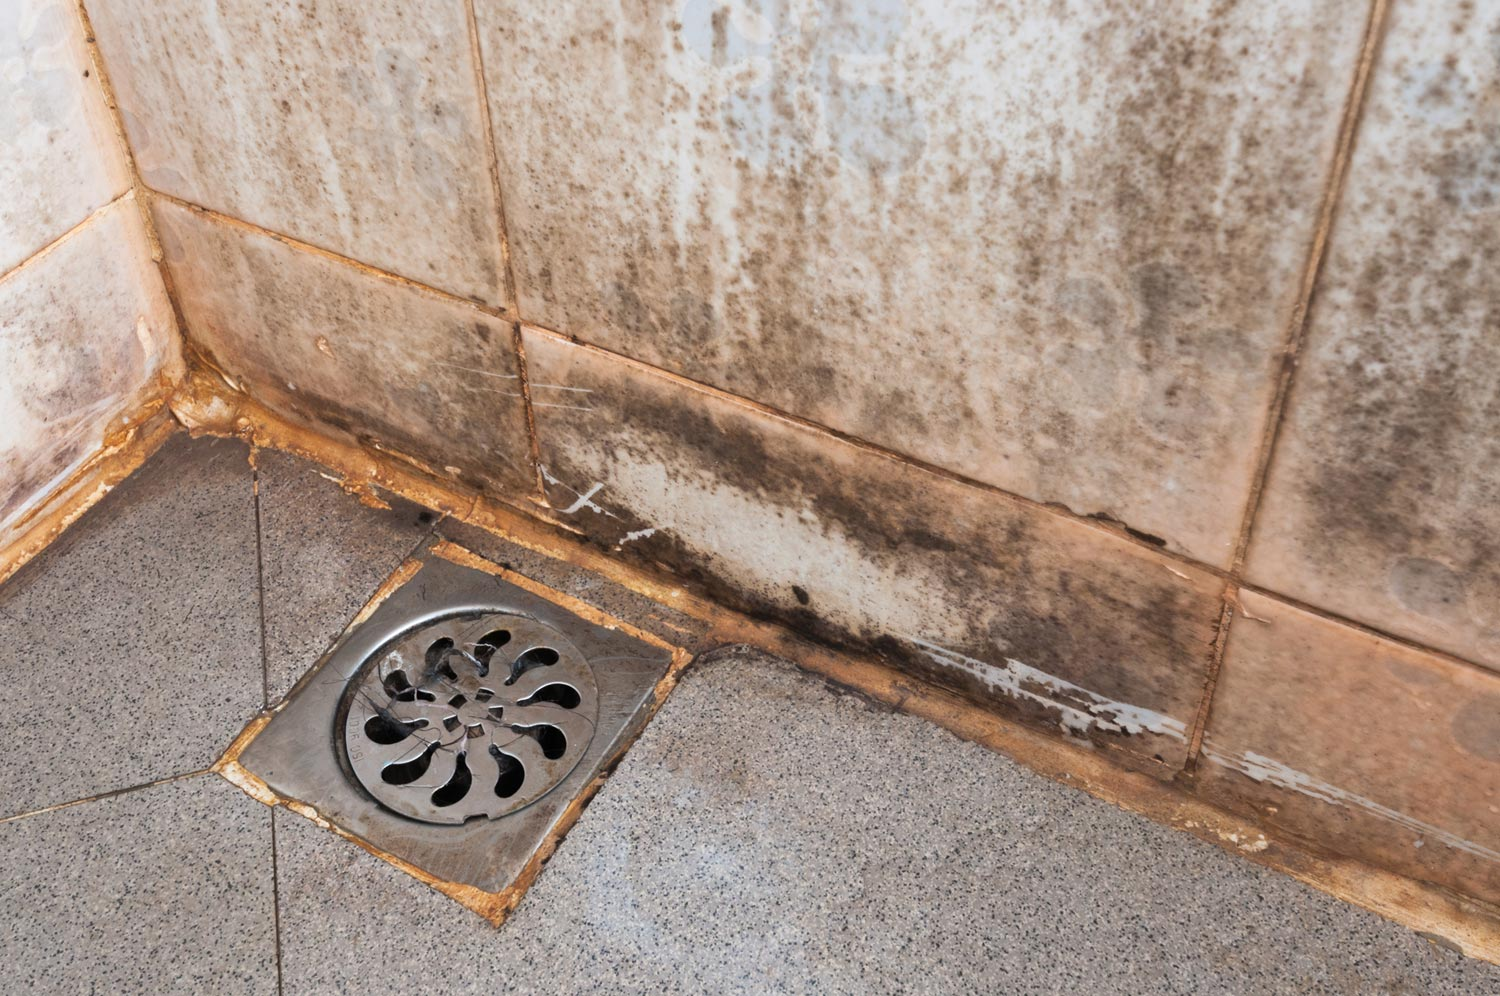 Top 7 Places Where Toxic Mold Lives In Your Home